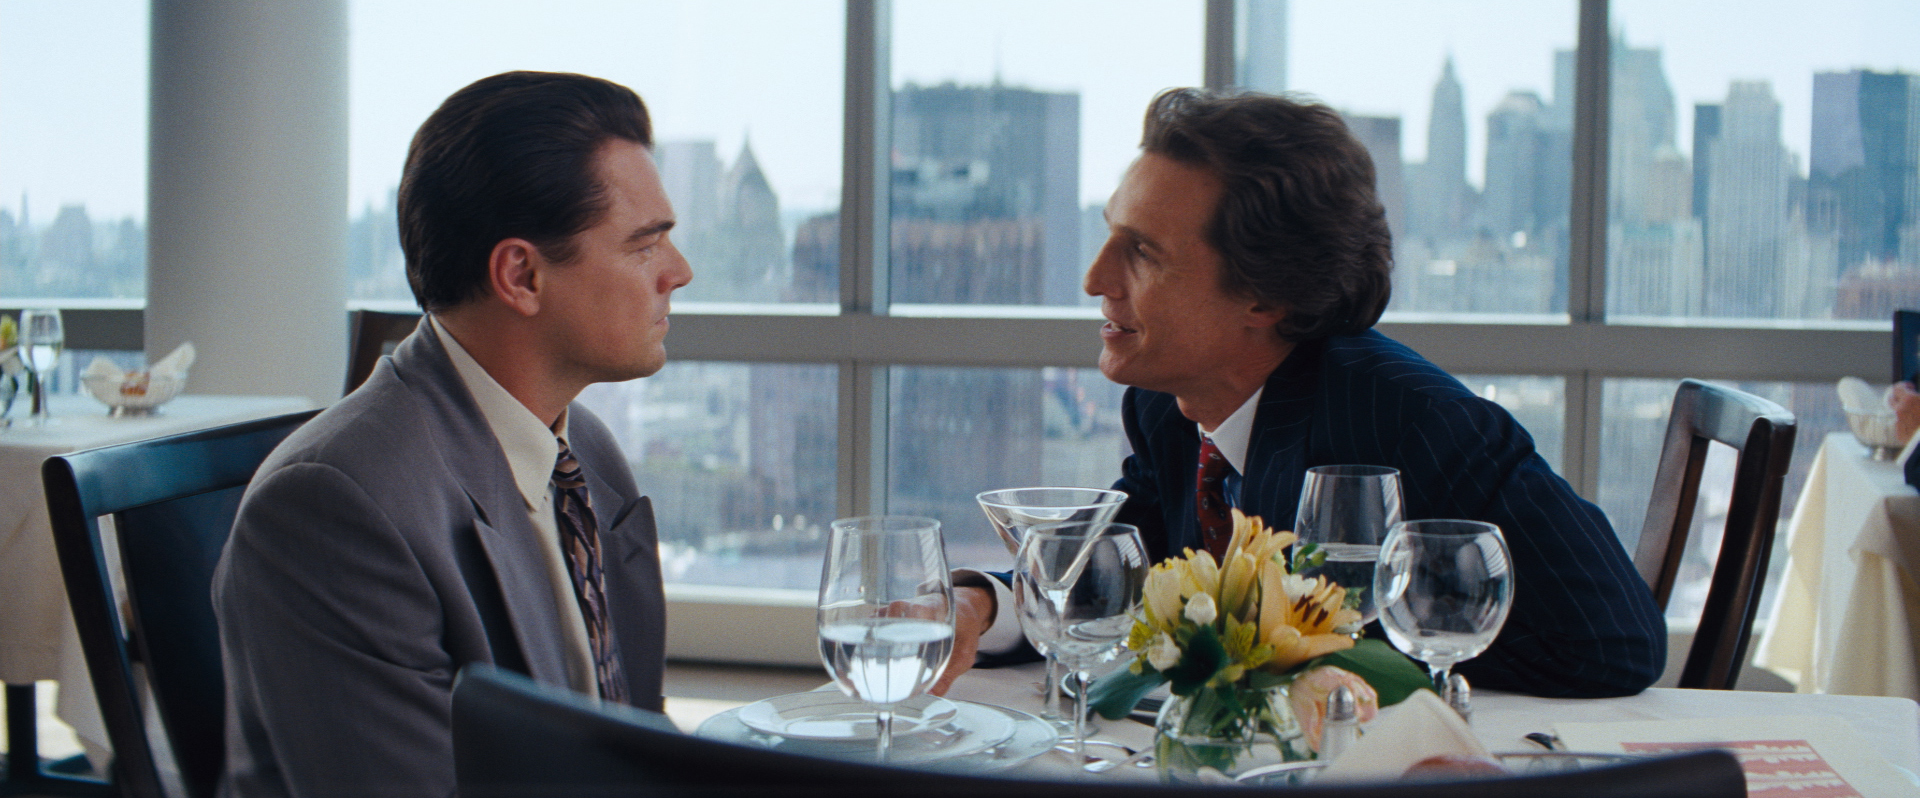 10 Iconic Movie Lines That Were Completely Unscripted